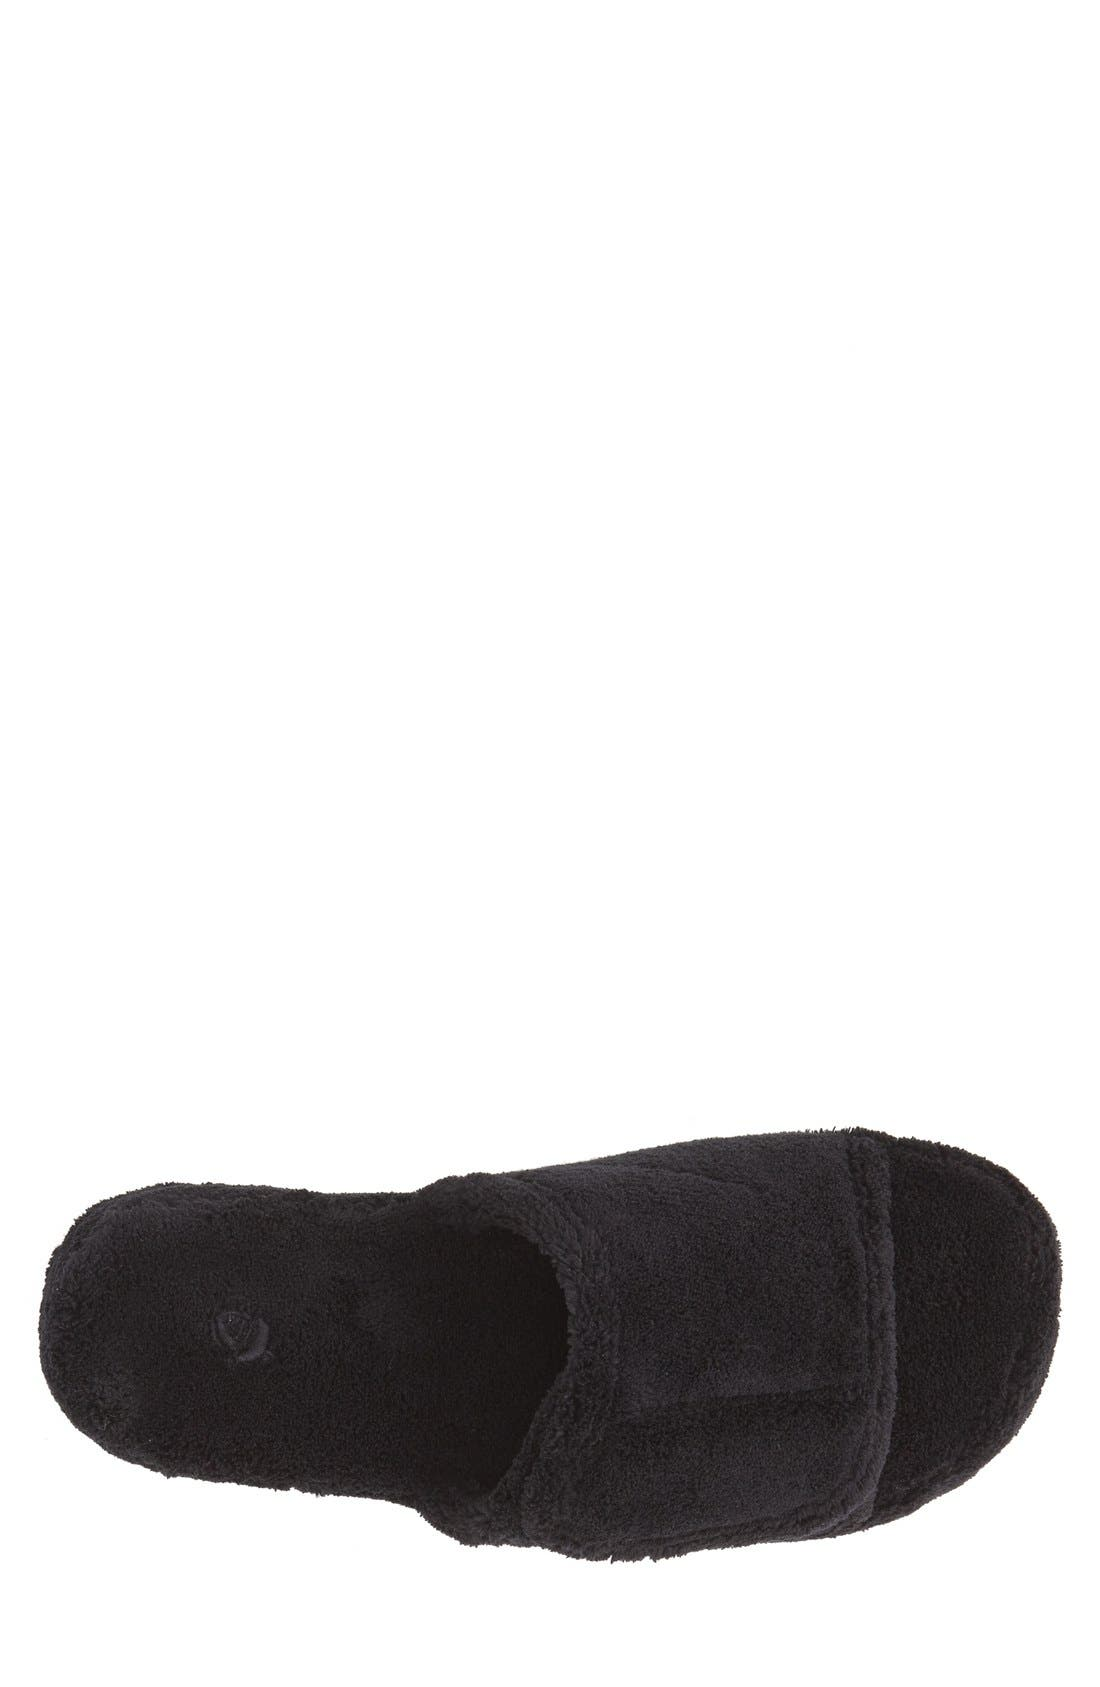 'Spa' Slipper,                             Alternate thumbnail 4, color,                             BLACK